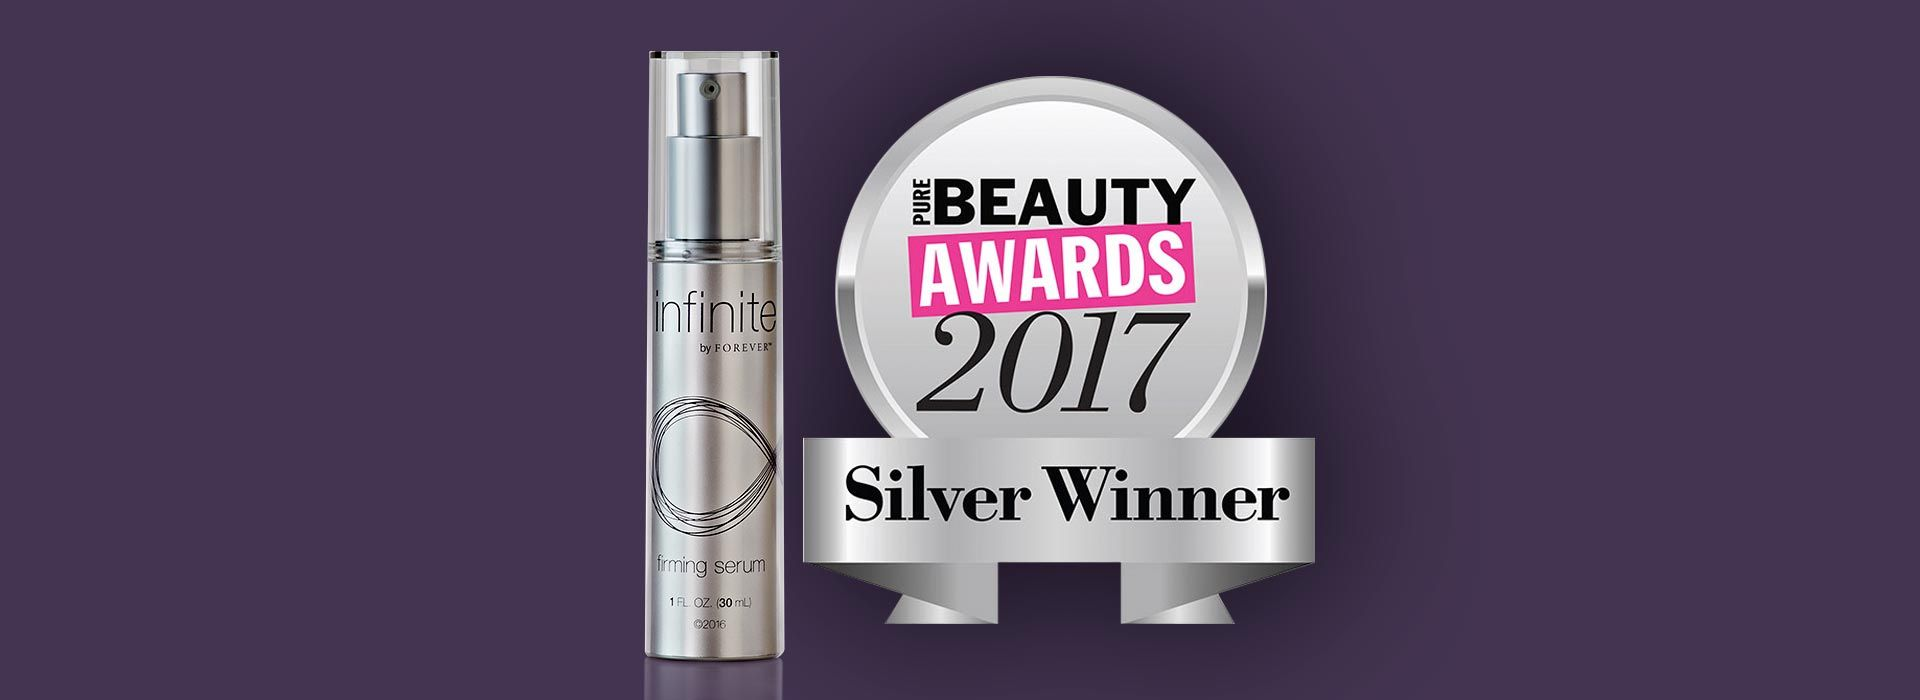 Beauty Award 2017 Fur Infinite By Forever Firming Serum